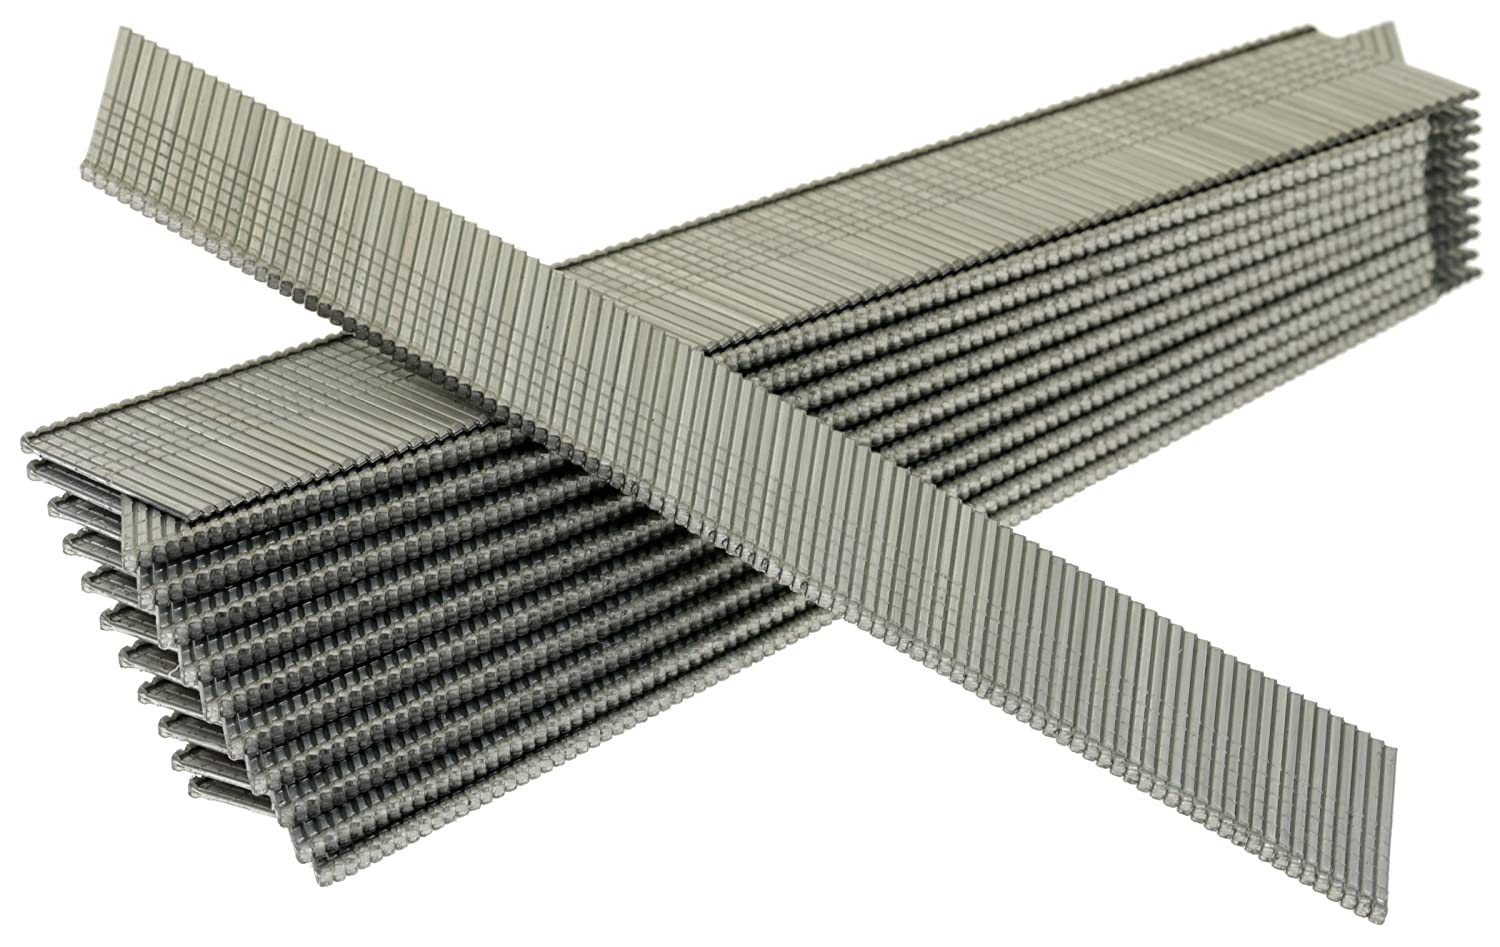 Grizzly H5579 3/4-Inch Angle Nails for H5570, 3000-Piece grizzly g1870 wood threading 1 inch die